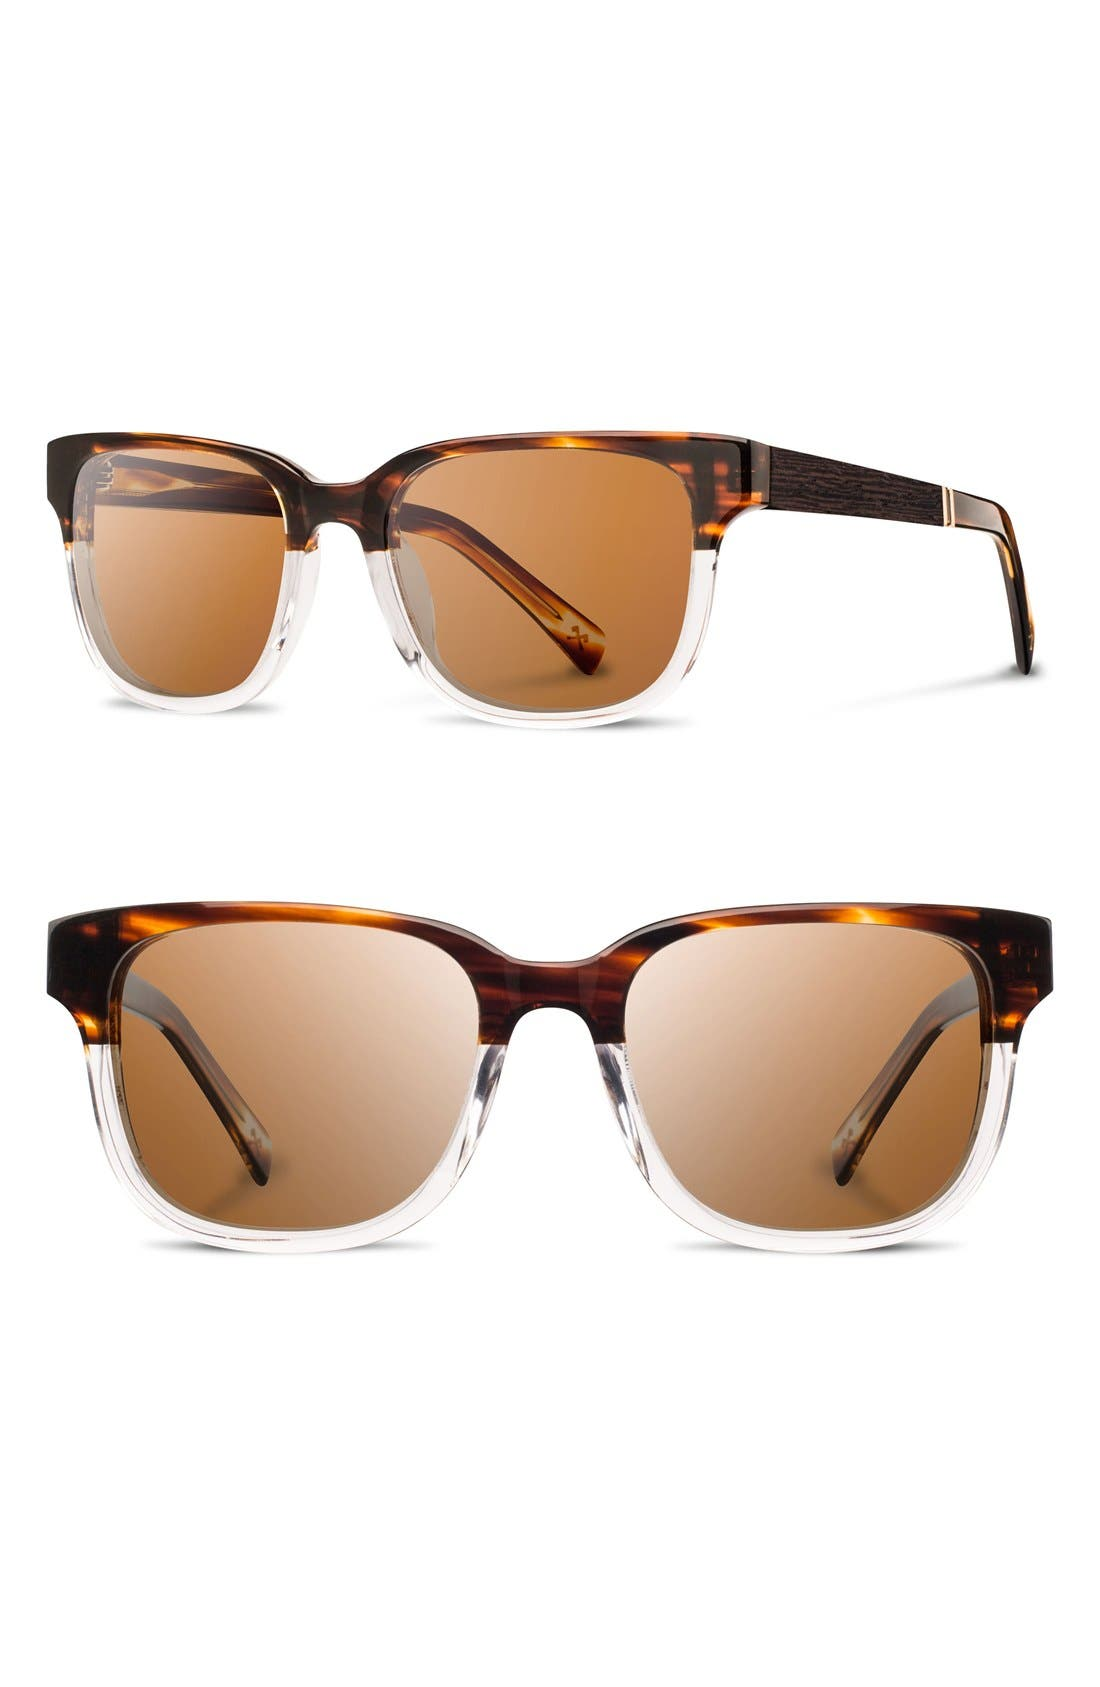 SHWOOD 'Prescott' 52mm Acetate & Wood Sunglasses